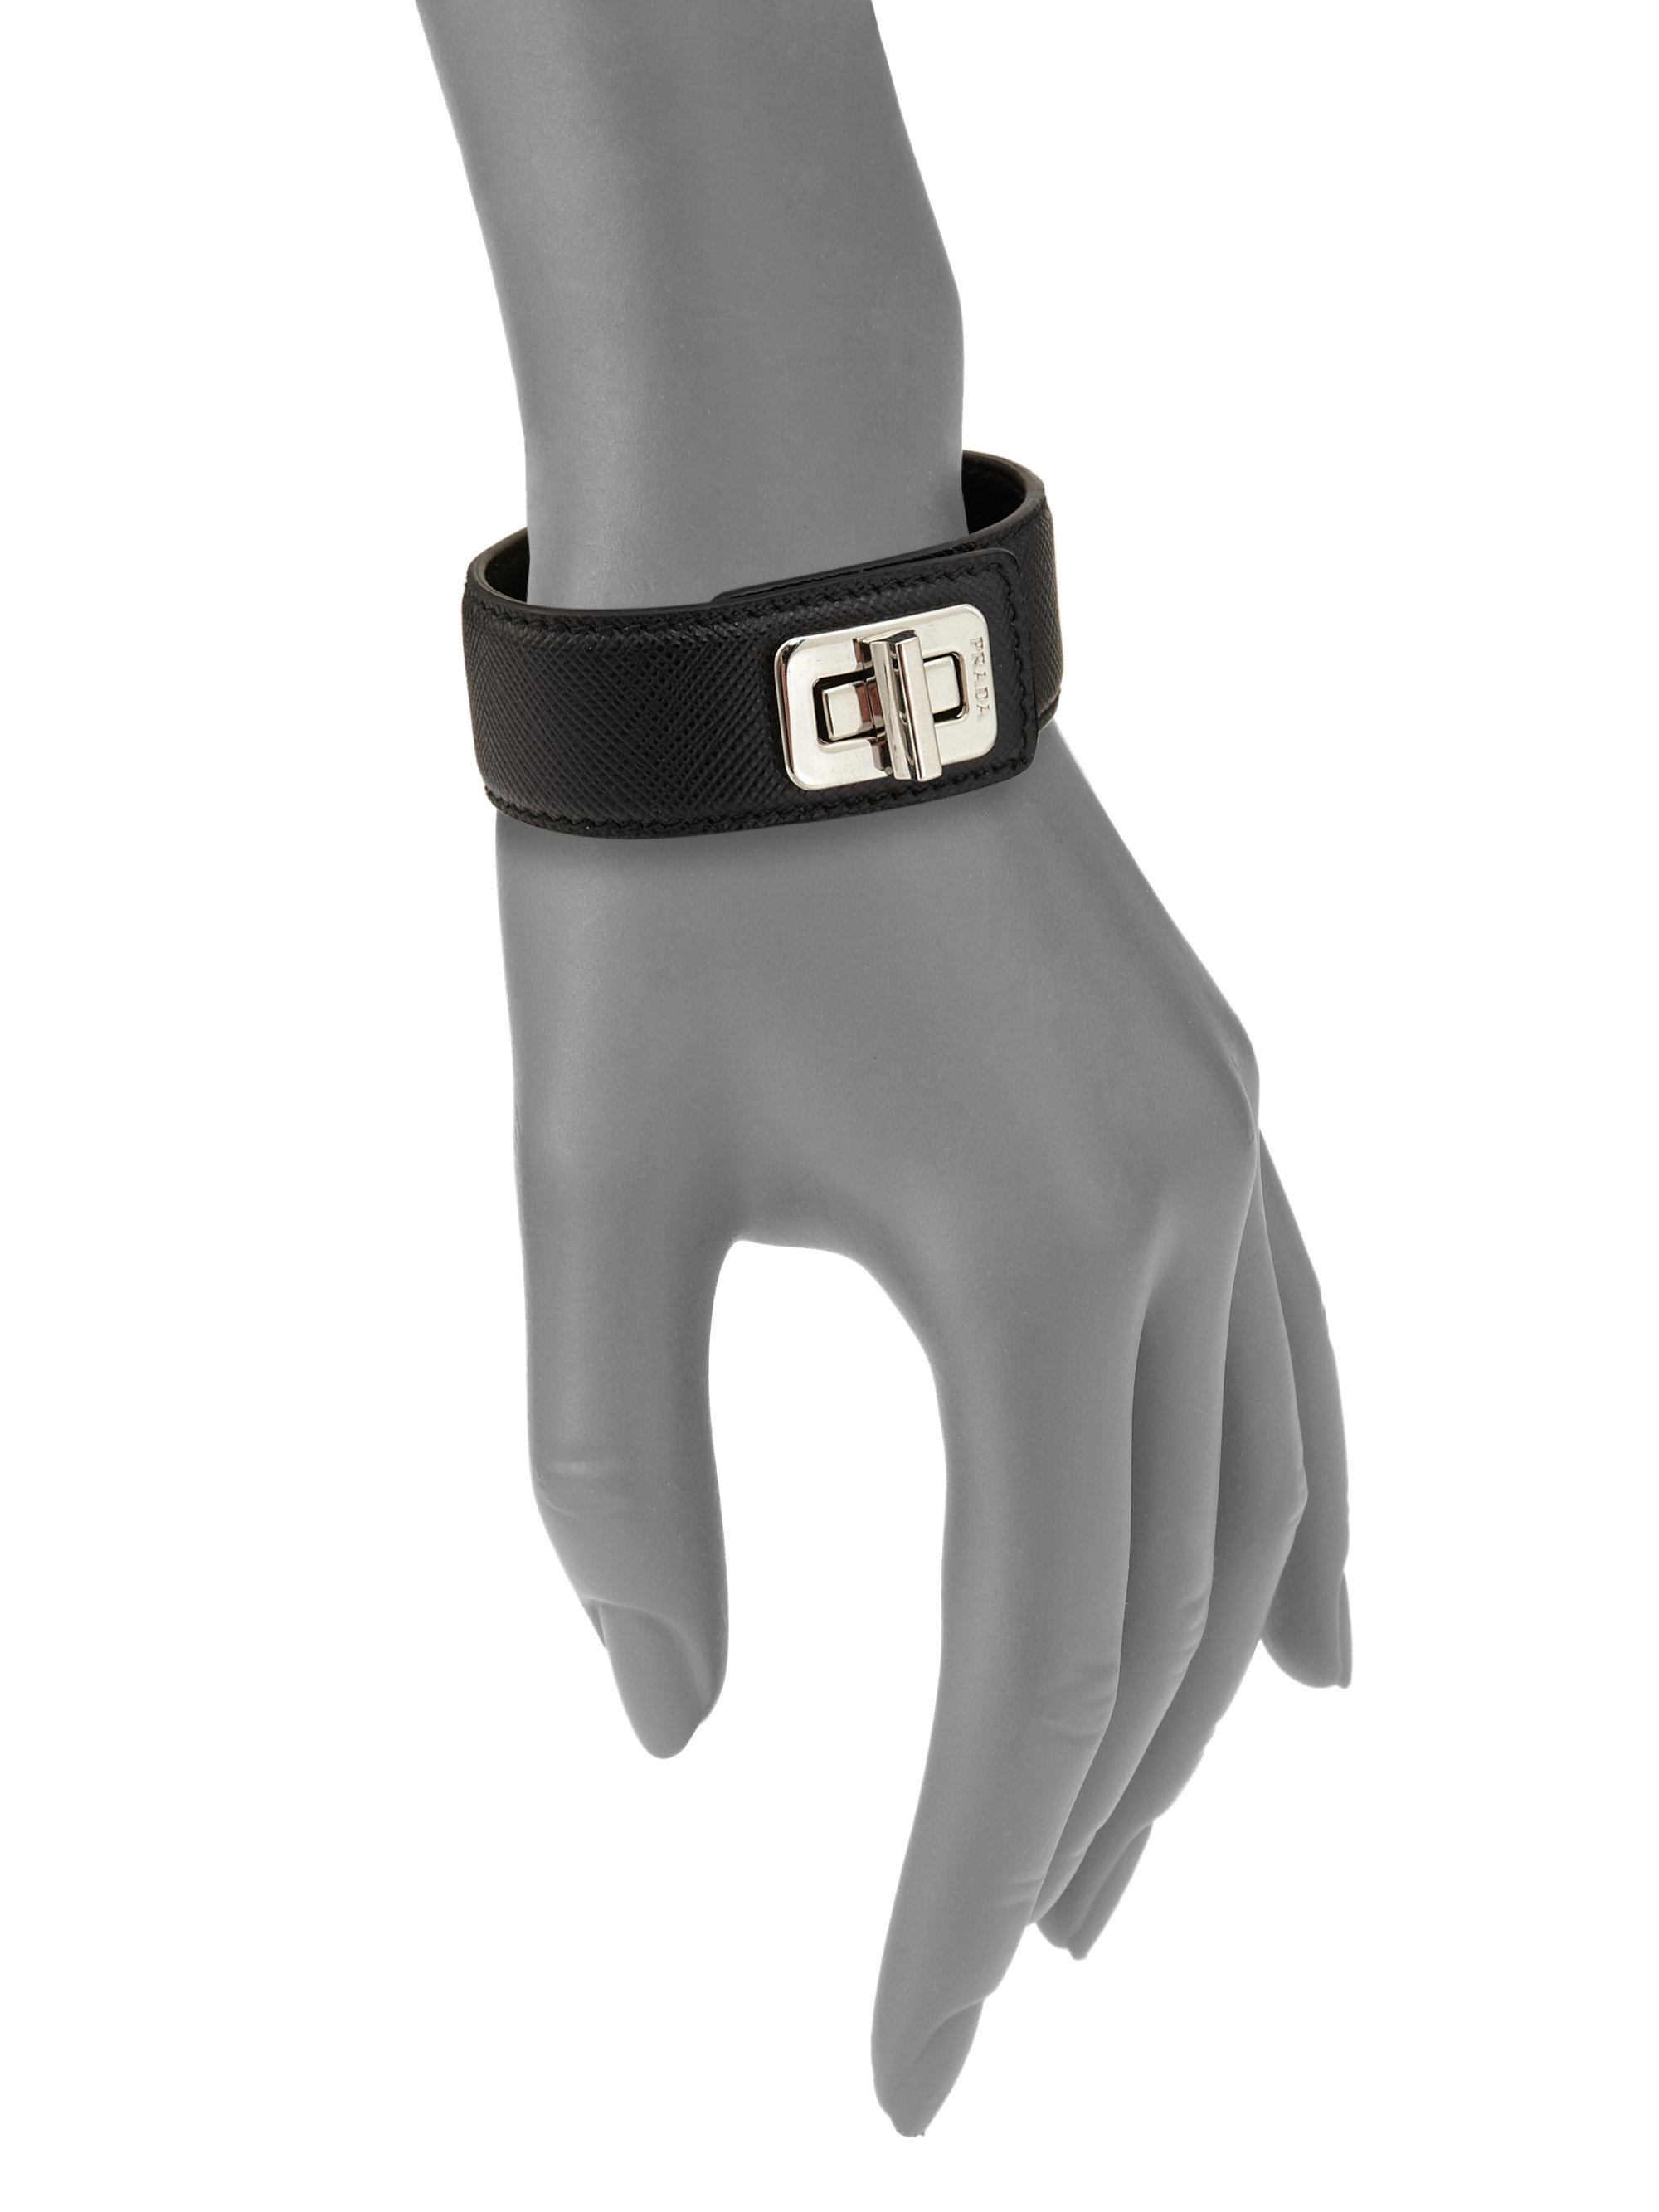 Prada mens leather gloves - Gallery